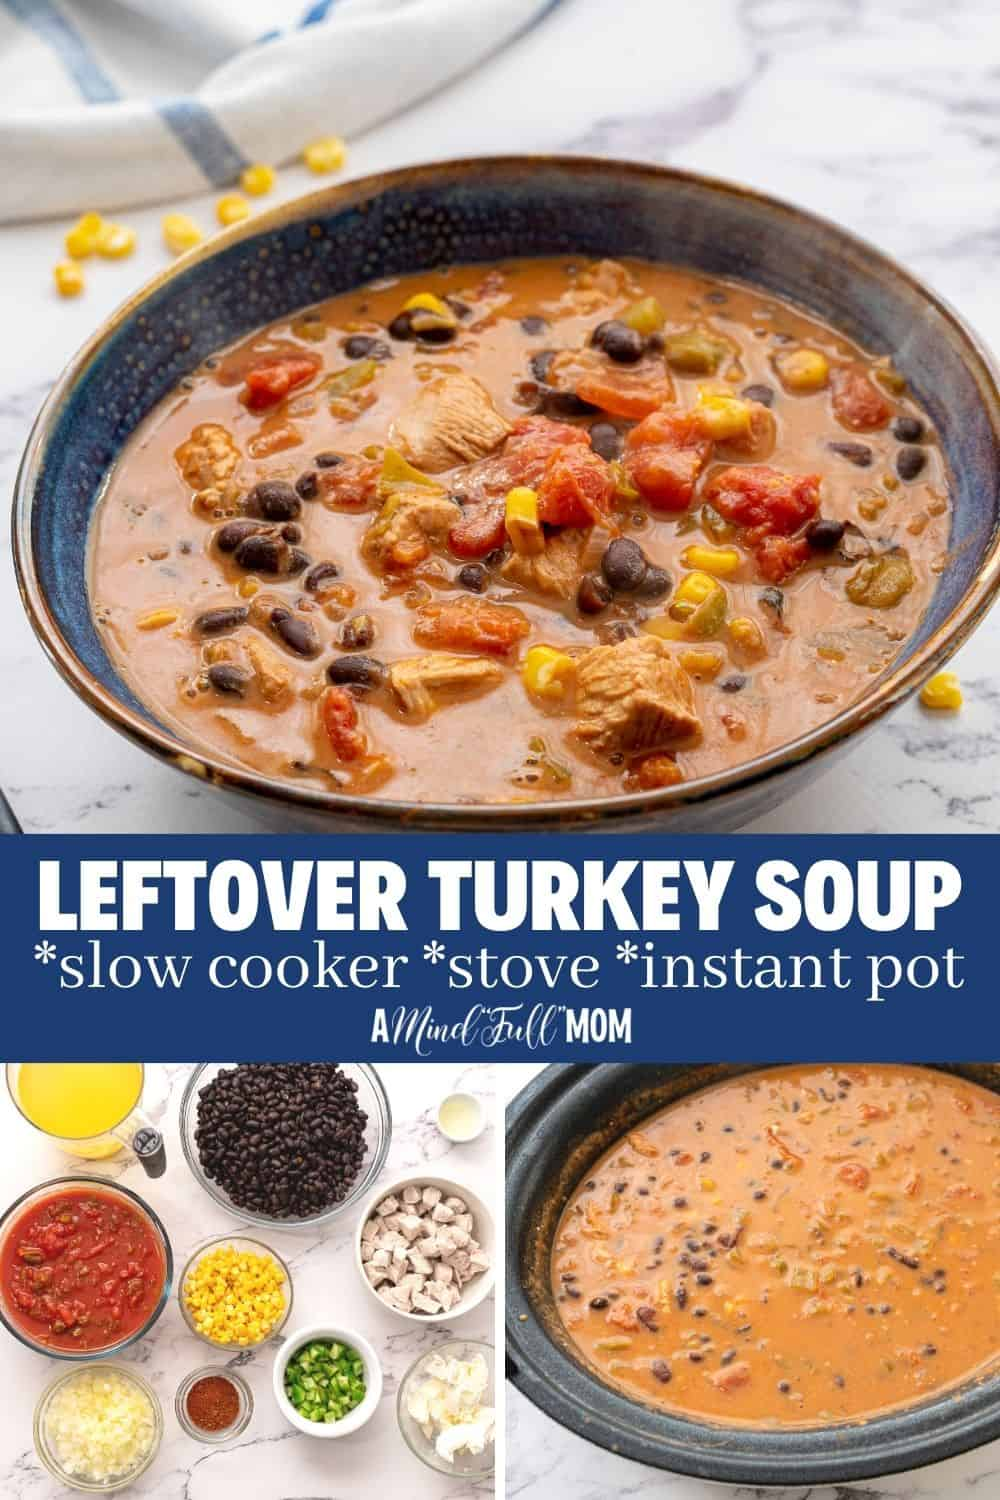 Looking for the best Leftover Turkey Soup Recipe? This Southwest Turkey Soup is it! A creamy, spicy broth envelopes leftover turkey, corn, and beans for a hearty turkey soup that tastes NOTHING like Thanksgiving! It is the perfect way to change up those leftovers into something new and delicious. And did I mention this leftover turkey soup is EASY to make as well?!